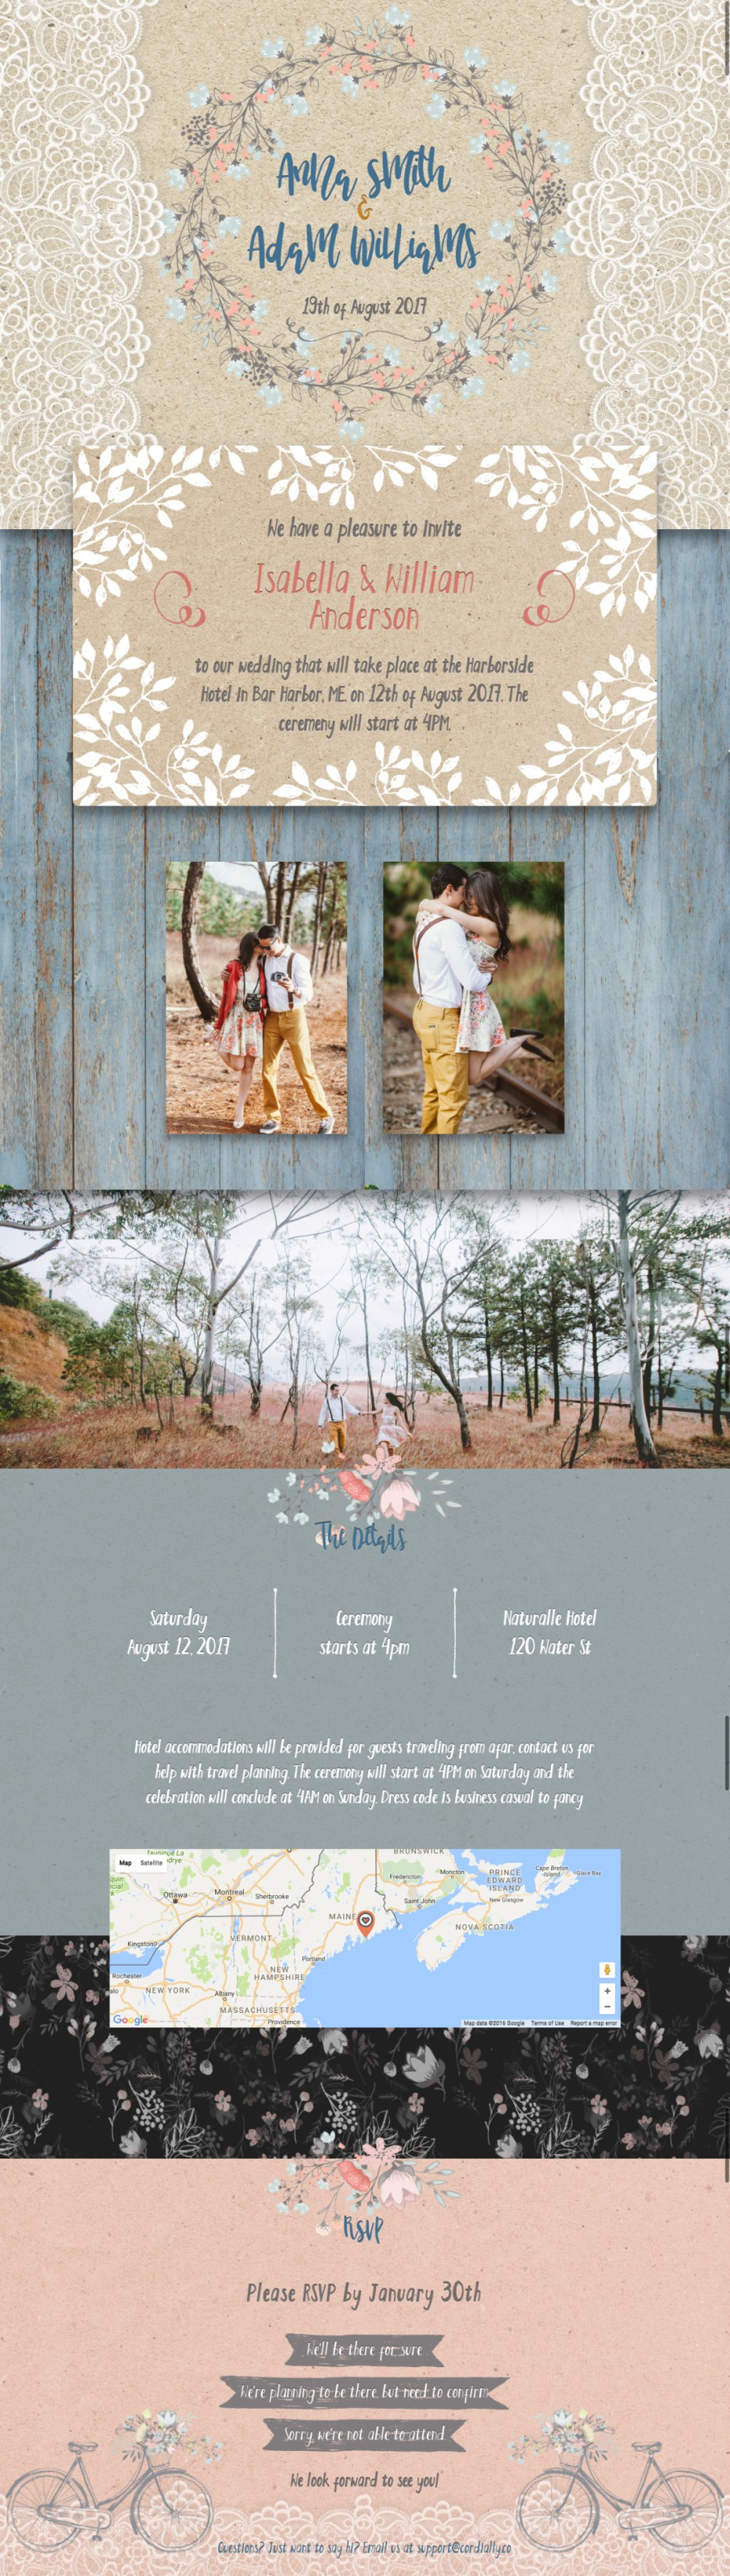 New rustic wedding invitation template at cordially. Free wedding ...